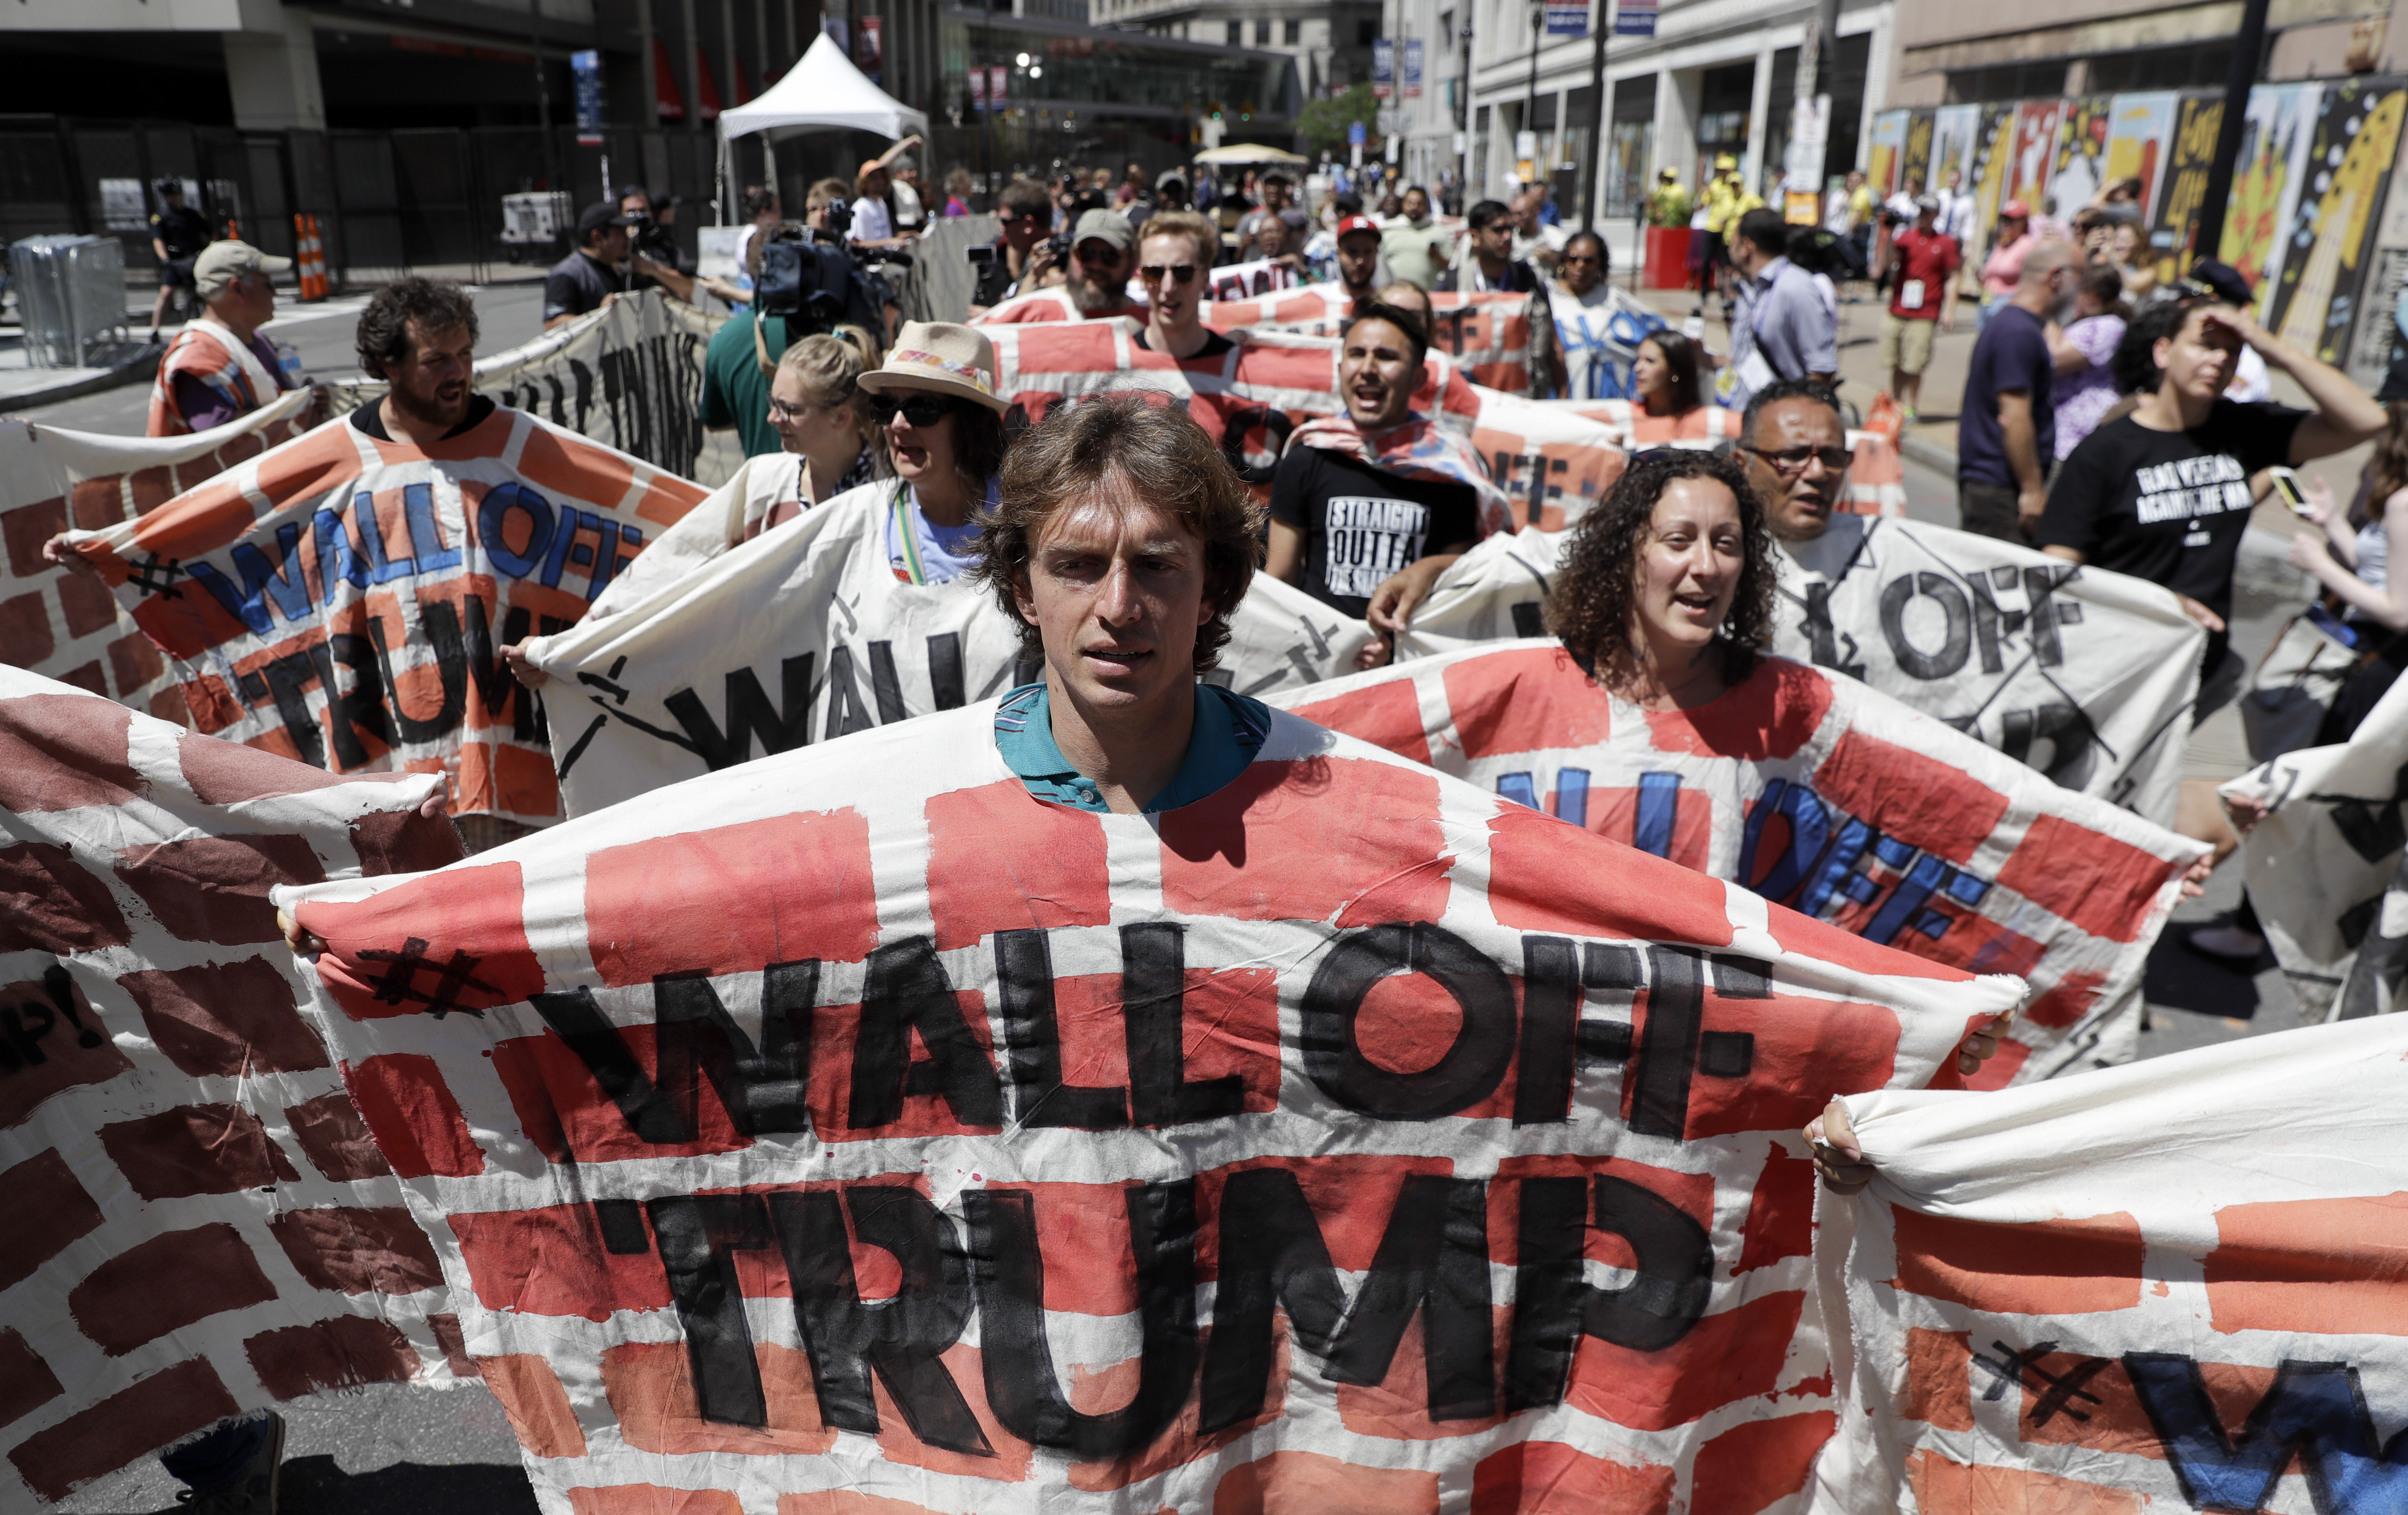 Immigrant rights activists hold up a fabric wall protesting Republican presidential candidate Donald Trump, Wednesday, July 20, 2016, in Cleveland, during the third day of the Republican convention. (AP Photo/Patrick Semansky)